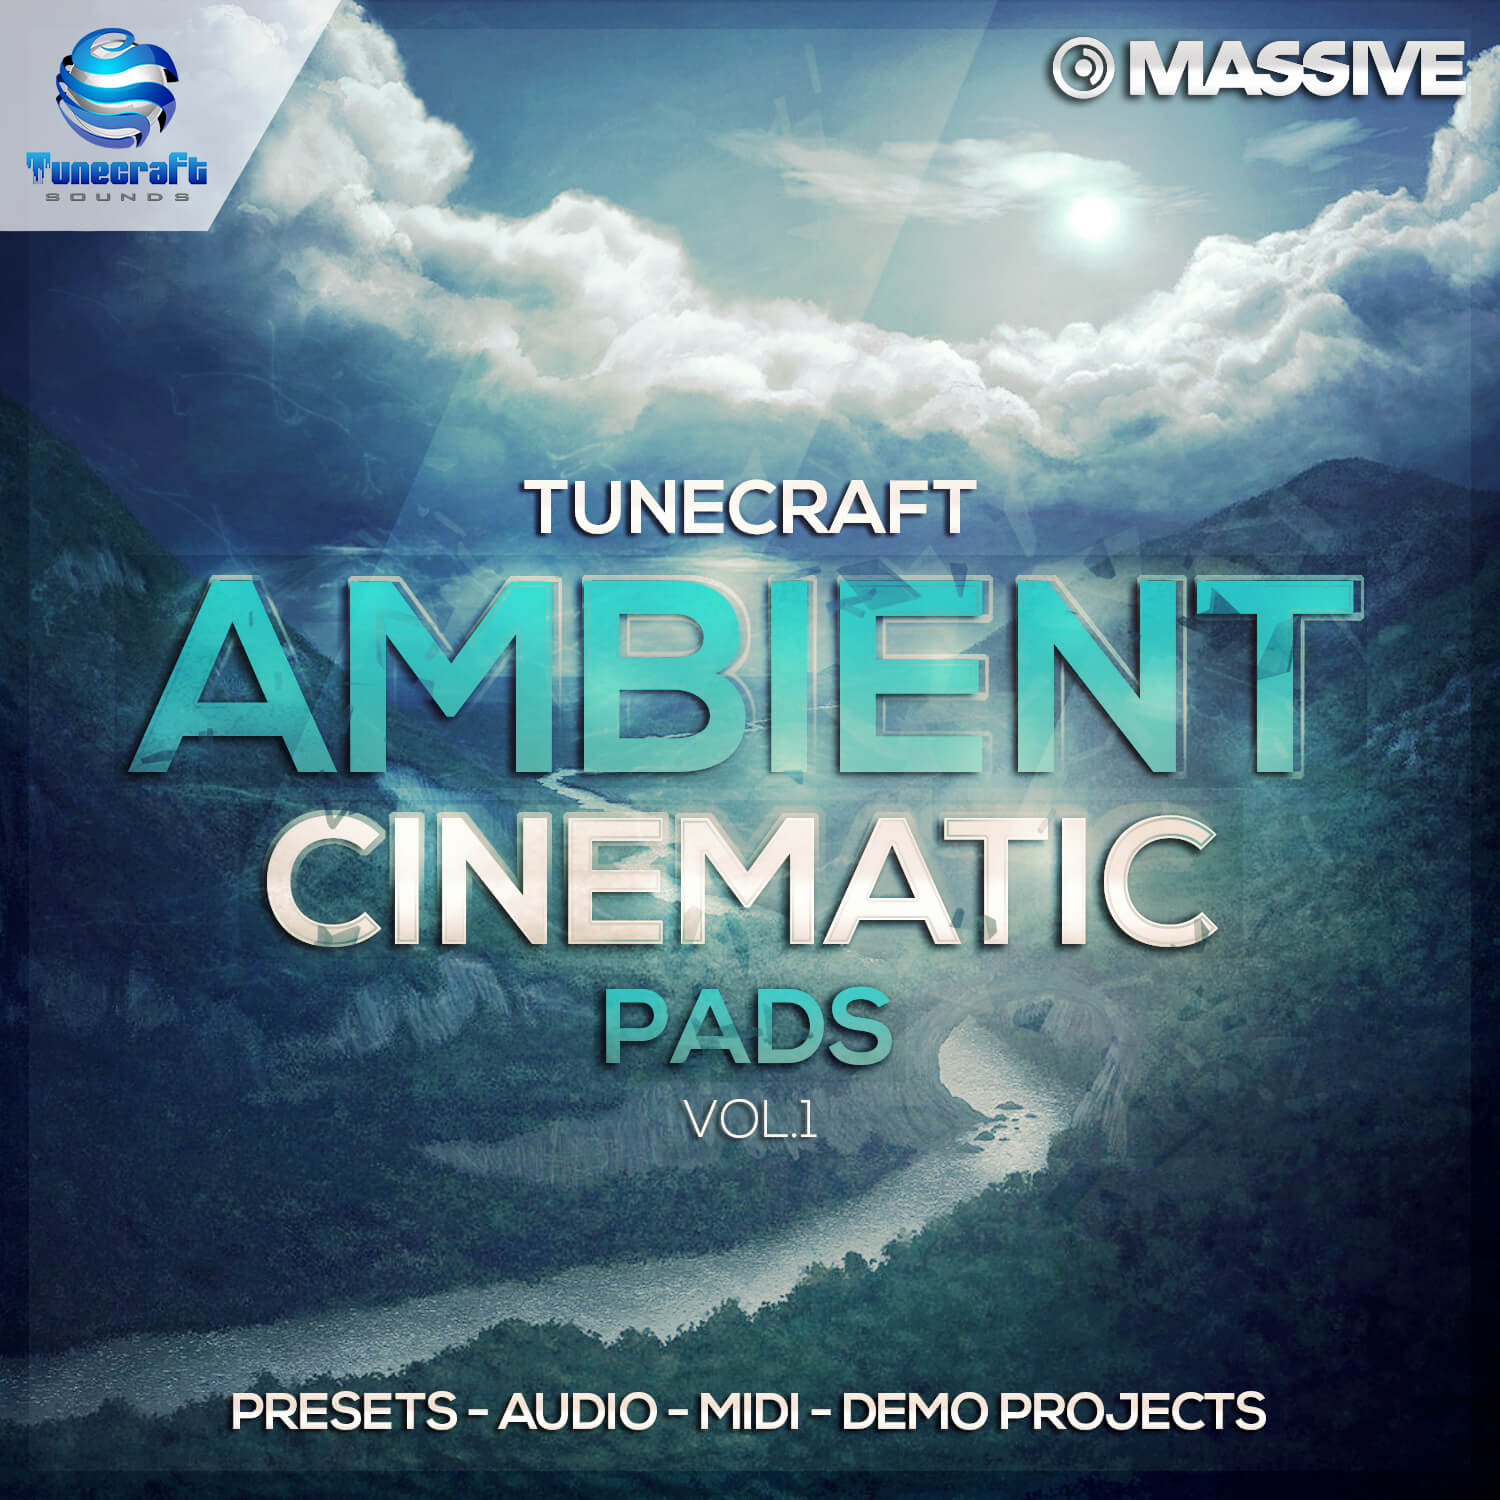 Tunecraft Ambient Cinematic Pads